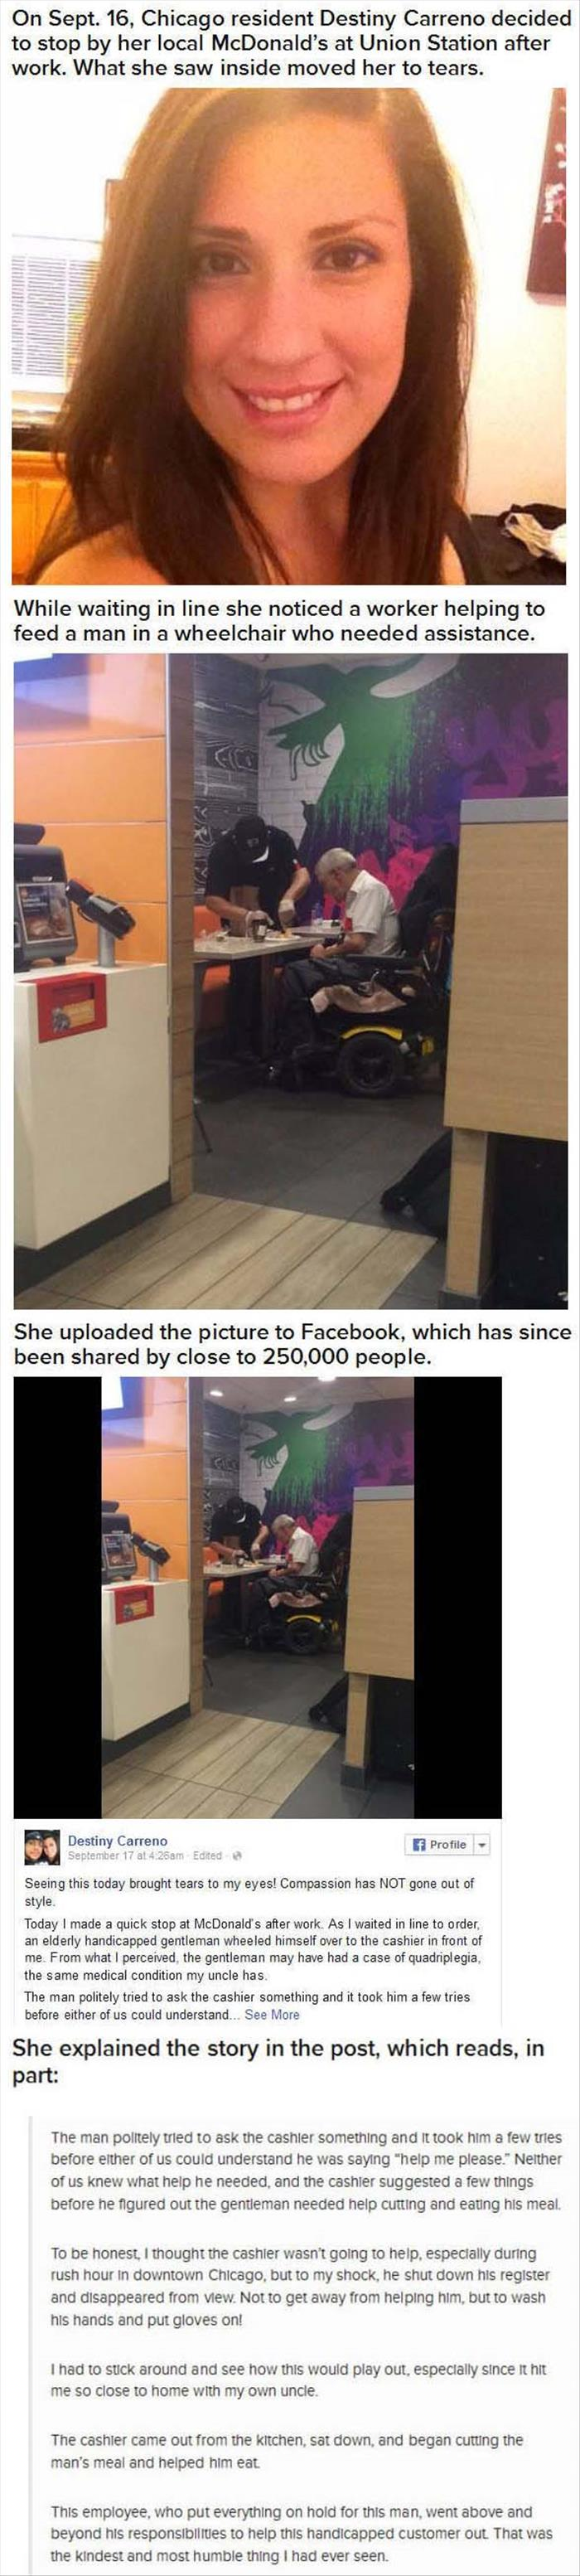 faith in humanity restored McDonalds